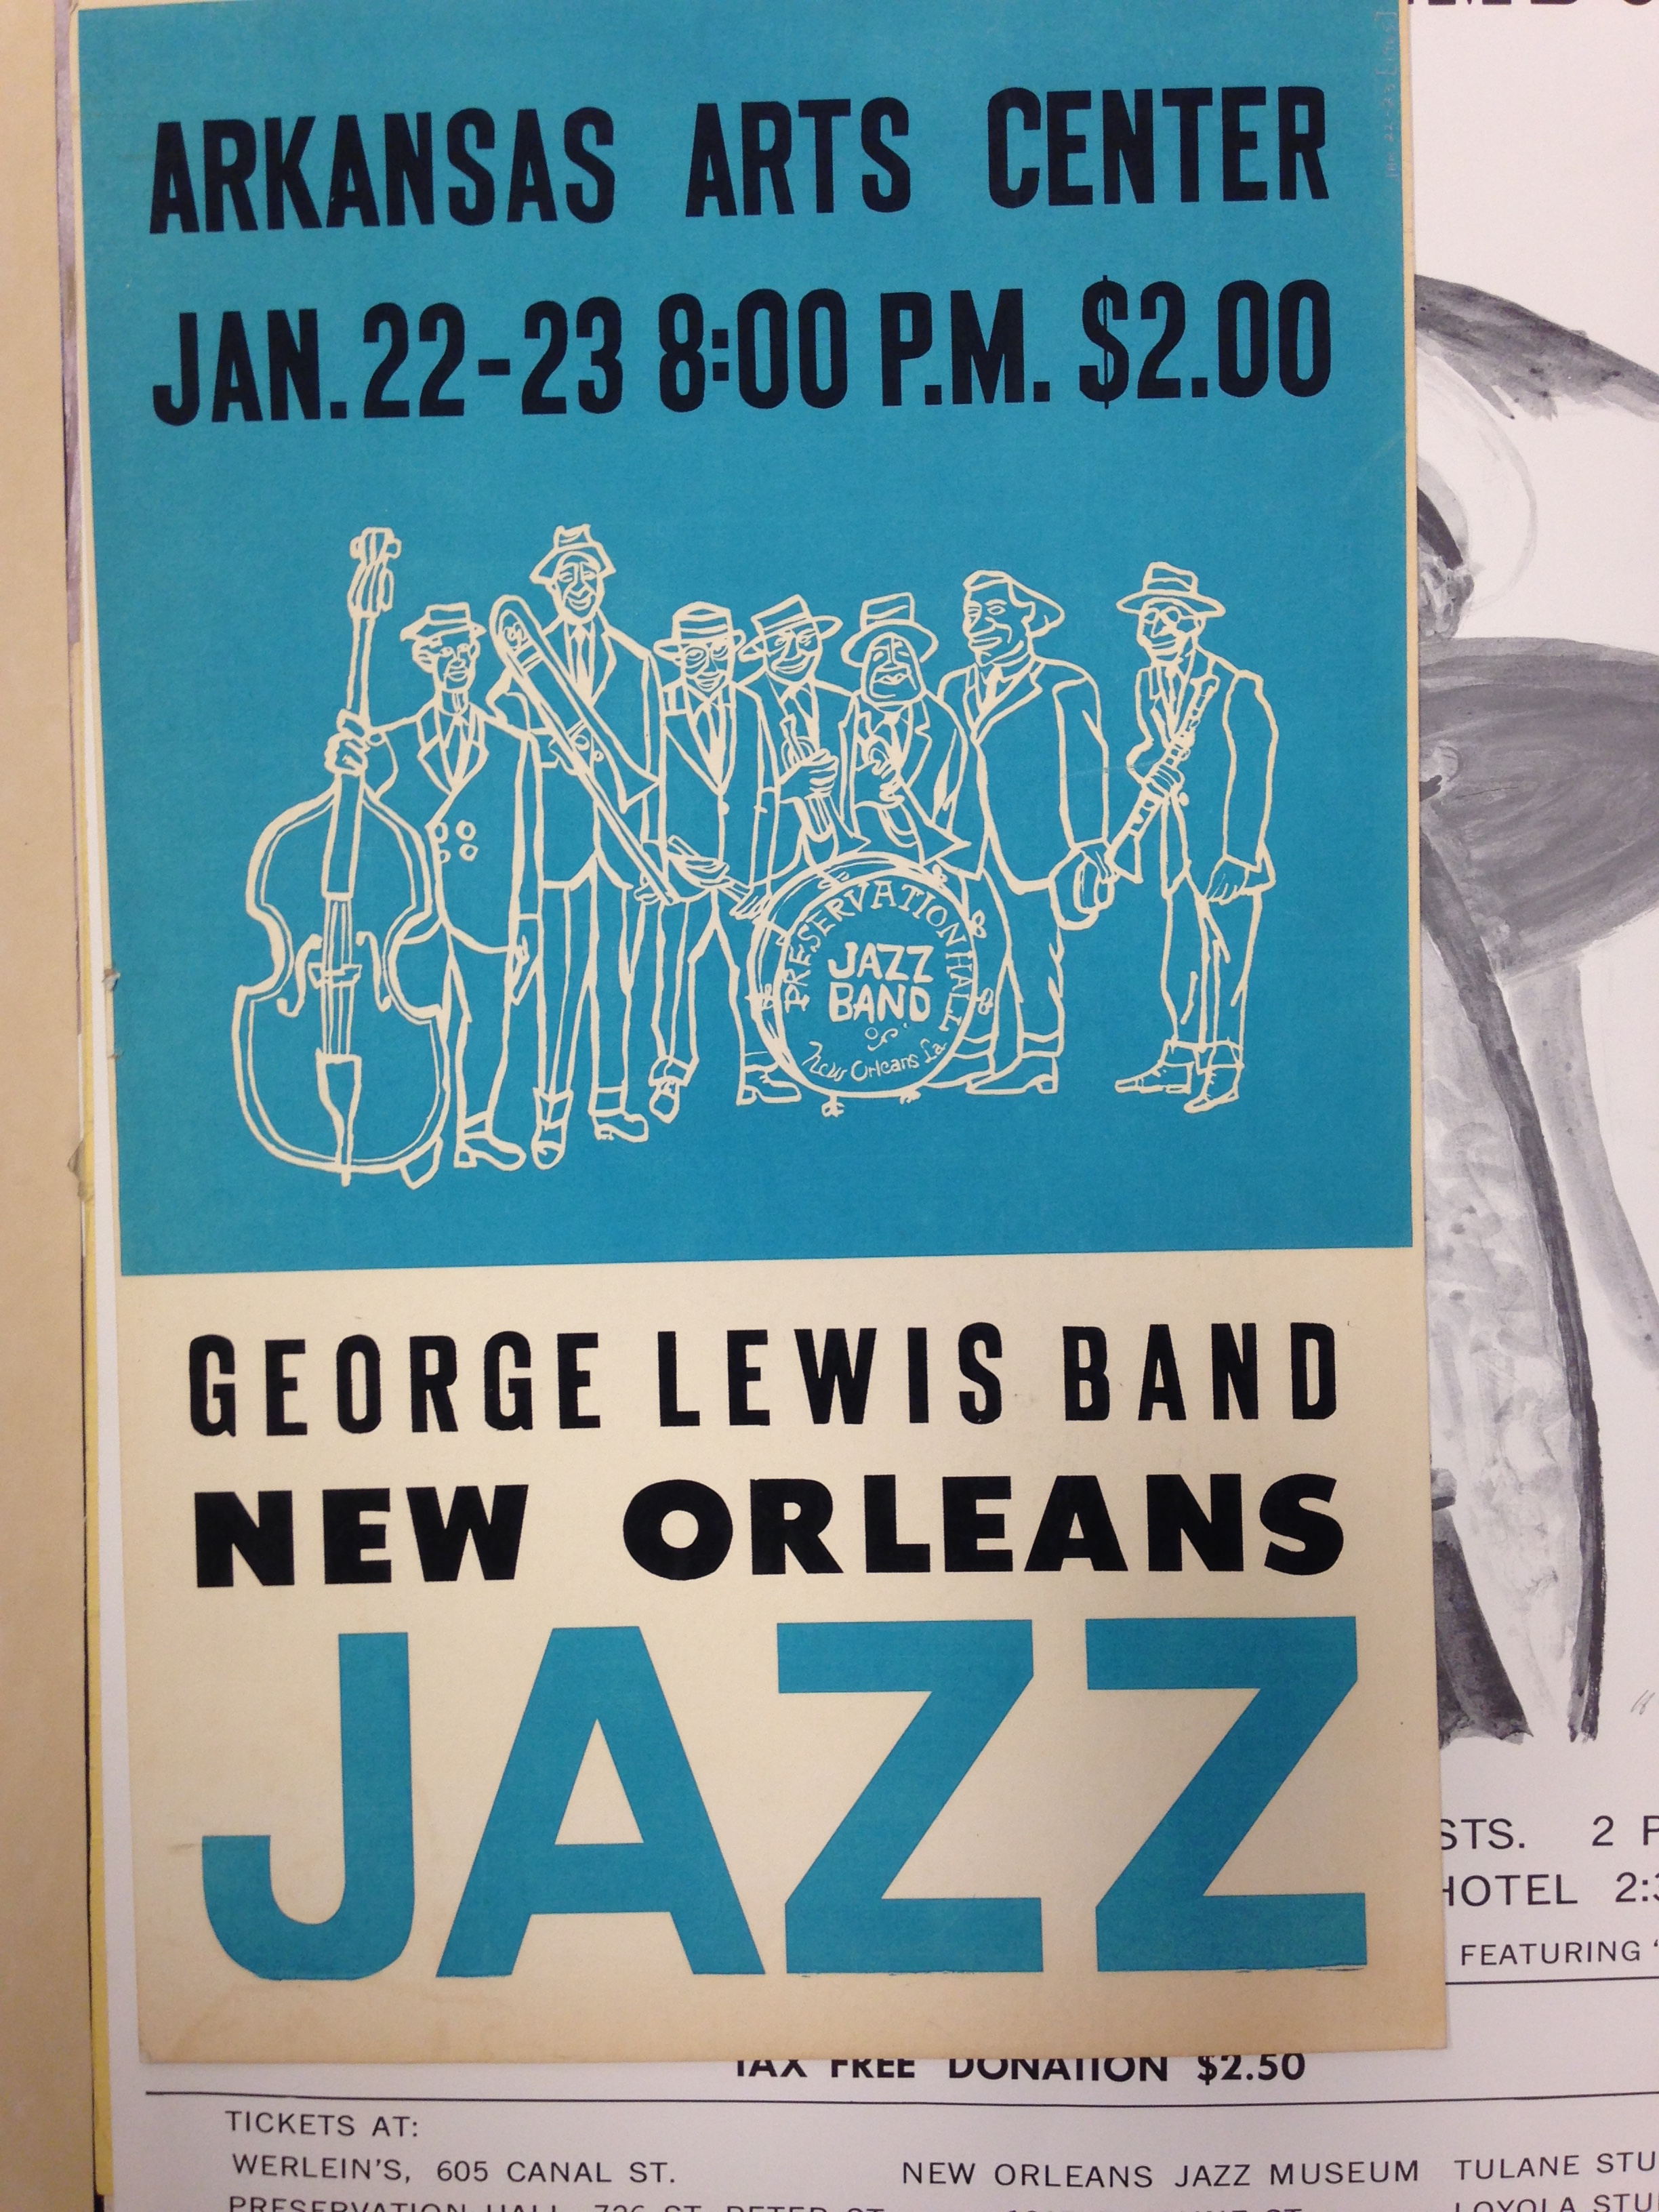 new orleans jazz archives george lewis band poster new orleans jazz arkansas arts center spring finn and co adventures